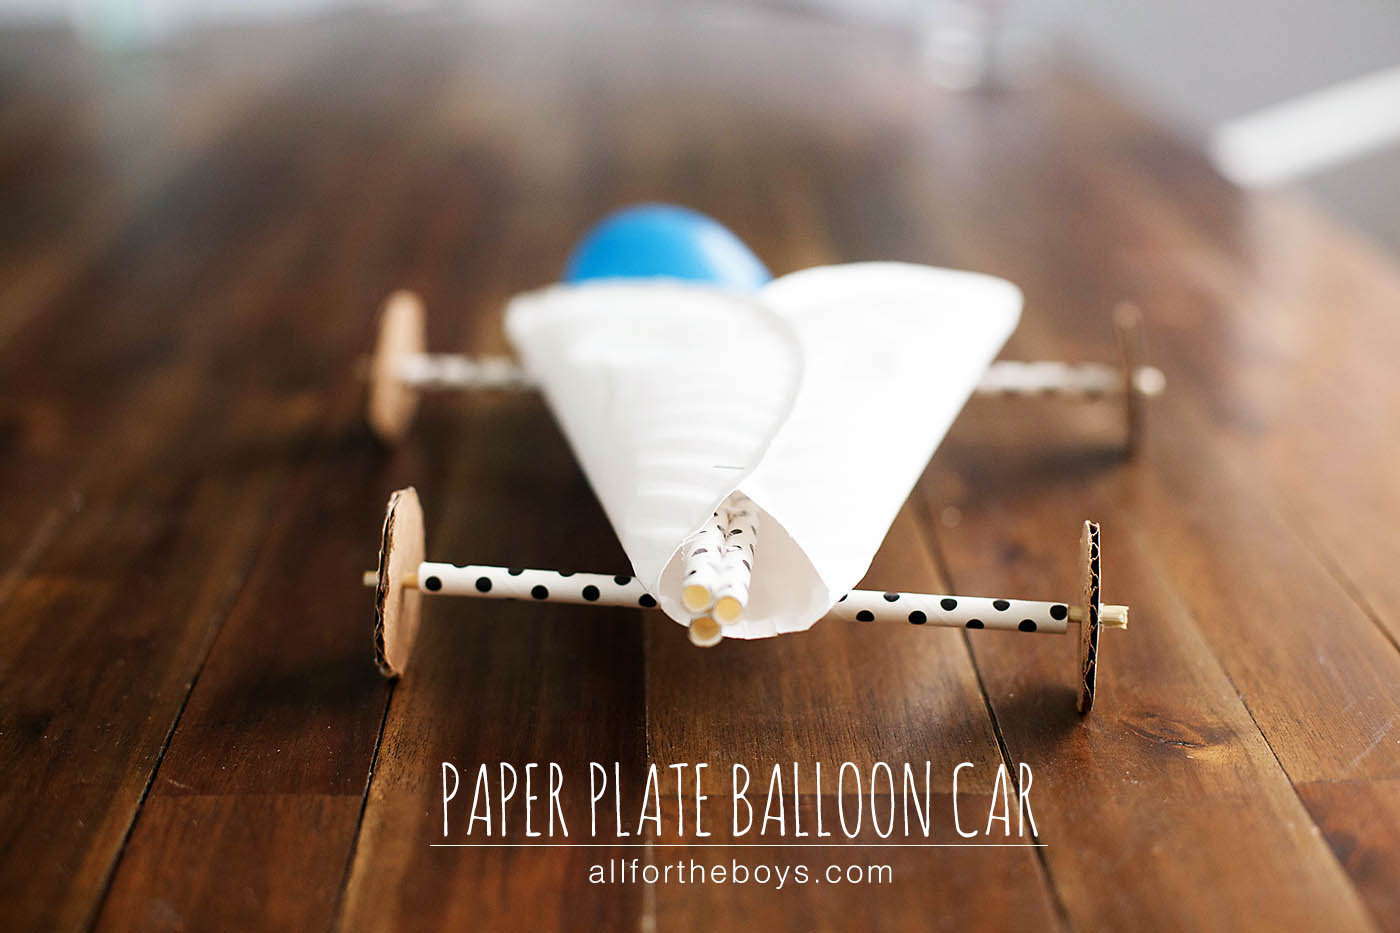 Paper plate balloon car all for the boys